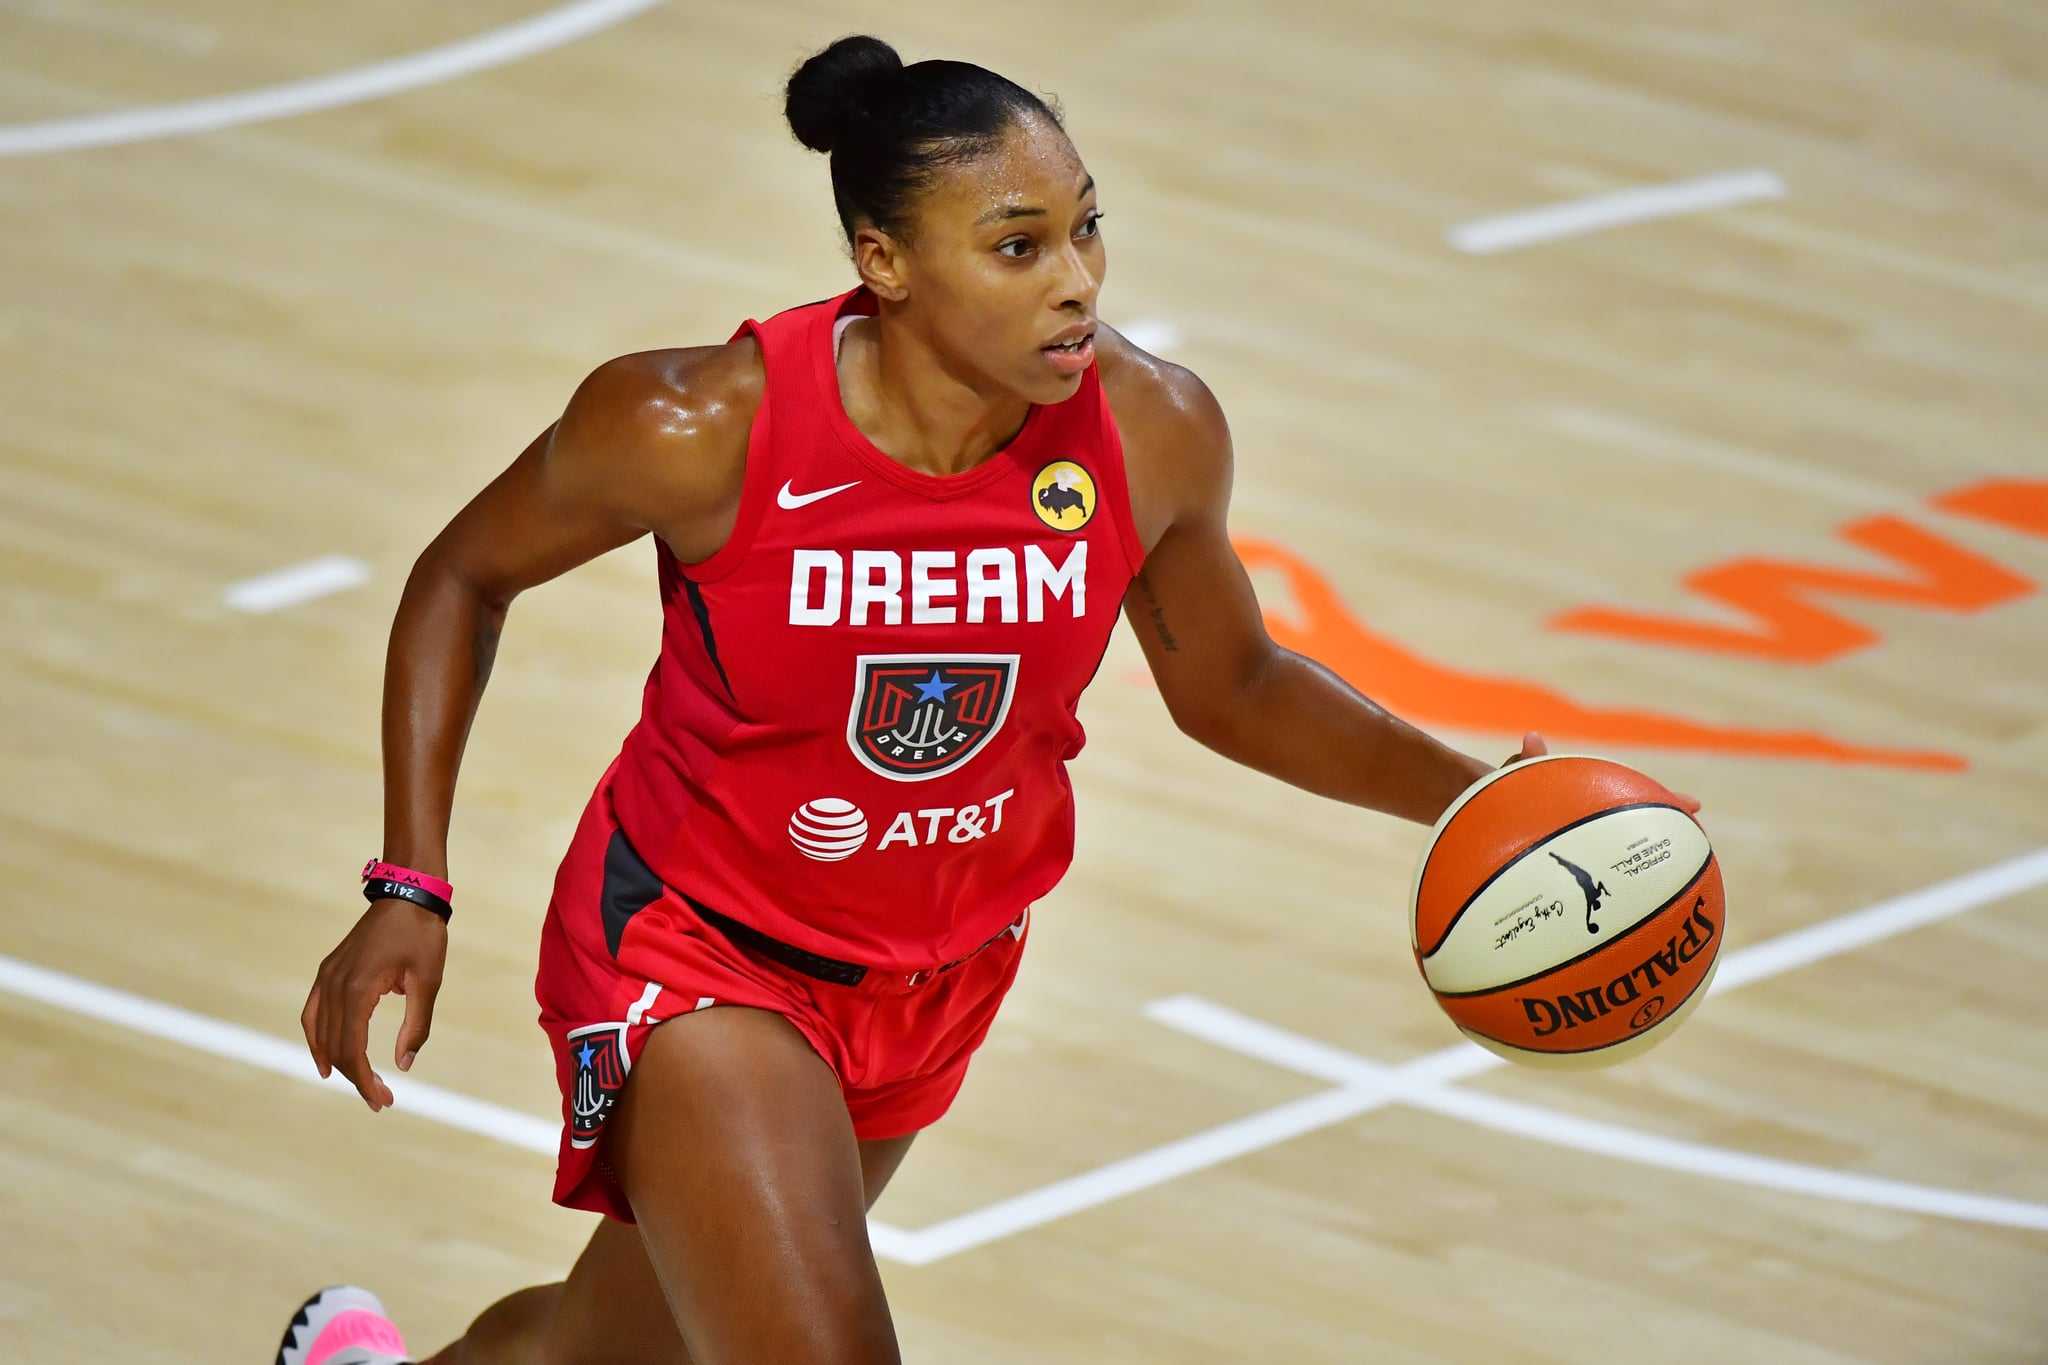 PALMETTO, FLORIDA - SEPTEMBER 11: Betnijah Laney #44 of the Atlanta Dream dribbles during the second half against the Connecticut Sun at Feld Entertainment Centre on September 11, 2020 in Palmetto, Florida. NOTE TO USER: User expressly acknowledges and agrees that, by downloading and or using this photograph, User is consenting to the terms and conditions of the Getty Images Licence Agreement. (Photo by Julio Aguilar/Getty Images)